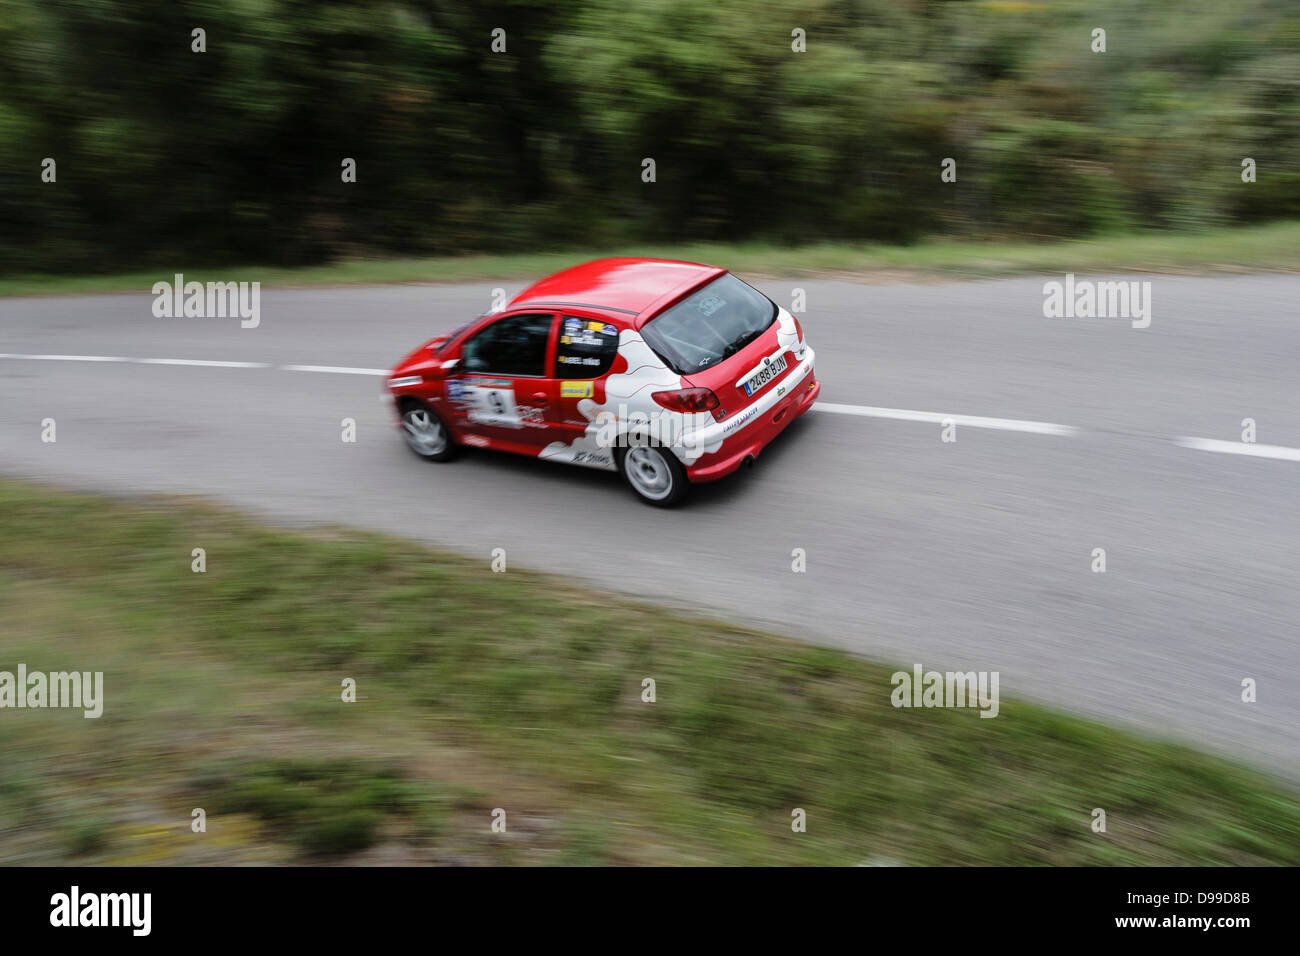 May 25, 2.013 U2013 Girona, Spain   The Peugeot 206 Number 9 Rally Car, Racing  On La Ganga Stage During The 28th Empordà Rally. In This Race Have  Participated ...